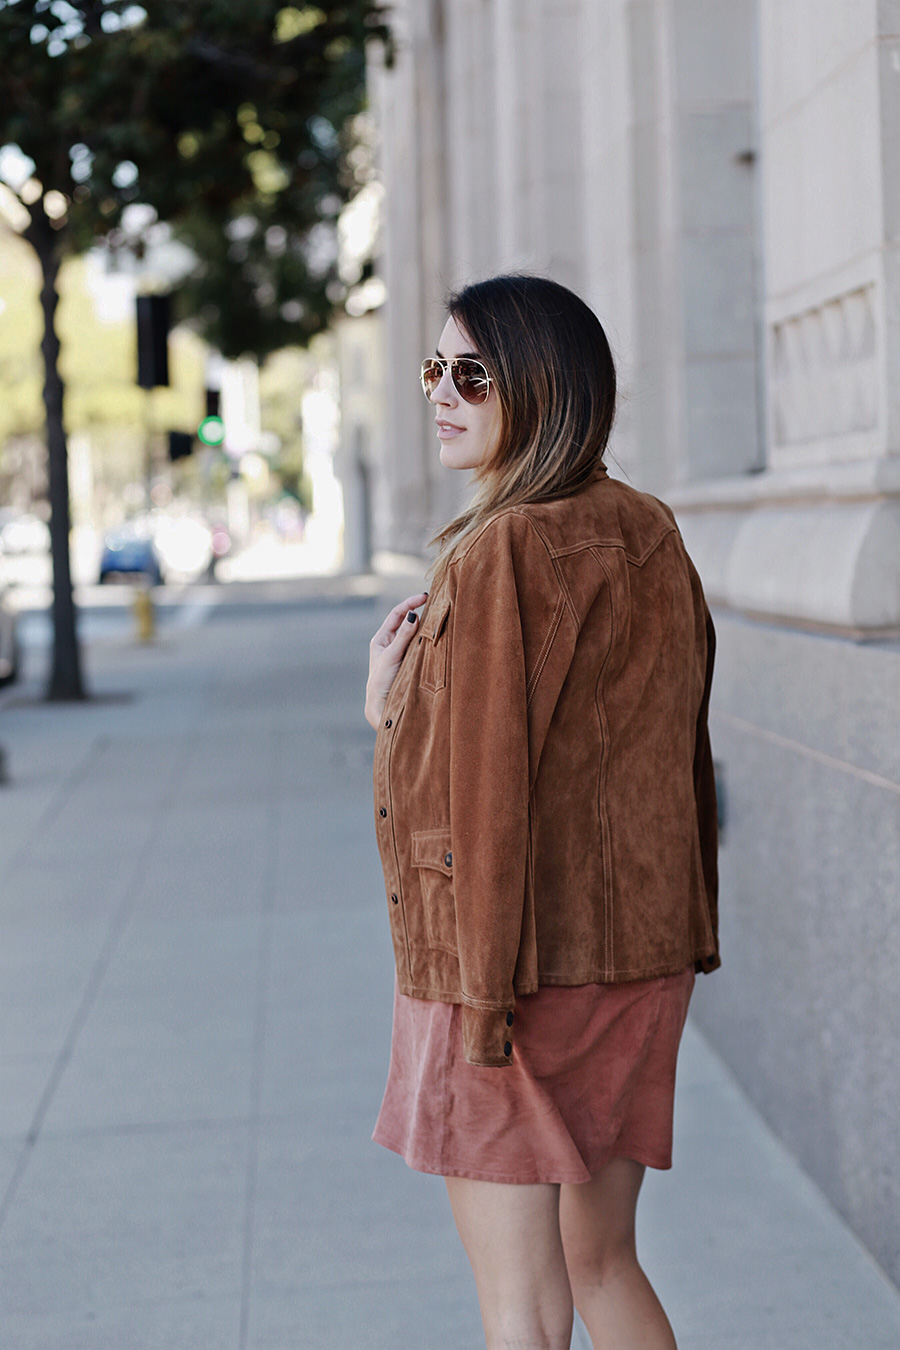 Suede Jacket Aviator Sunglasses Ombre Hair